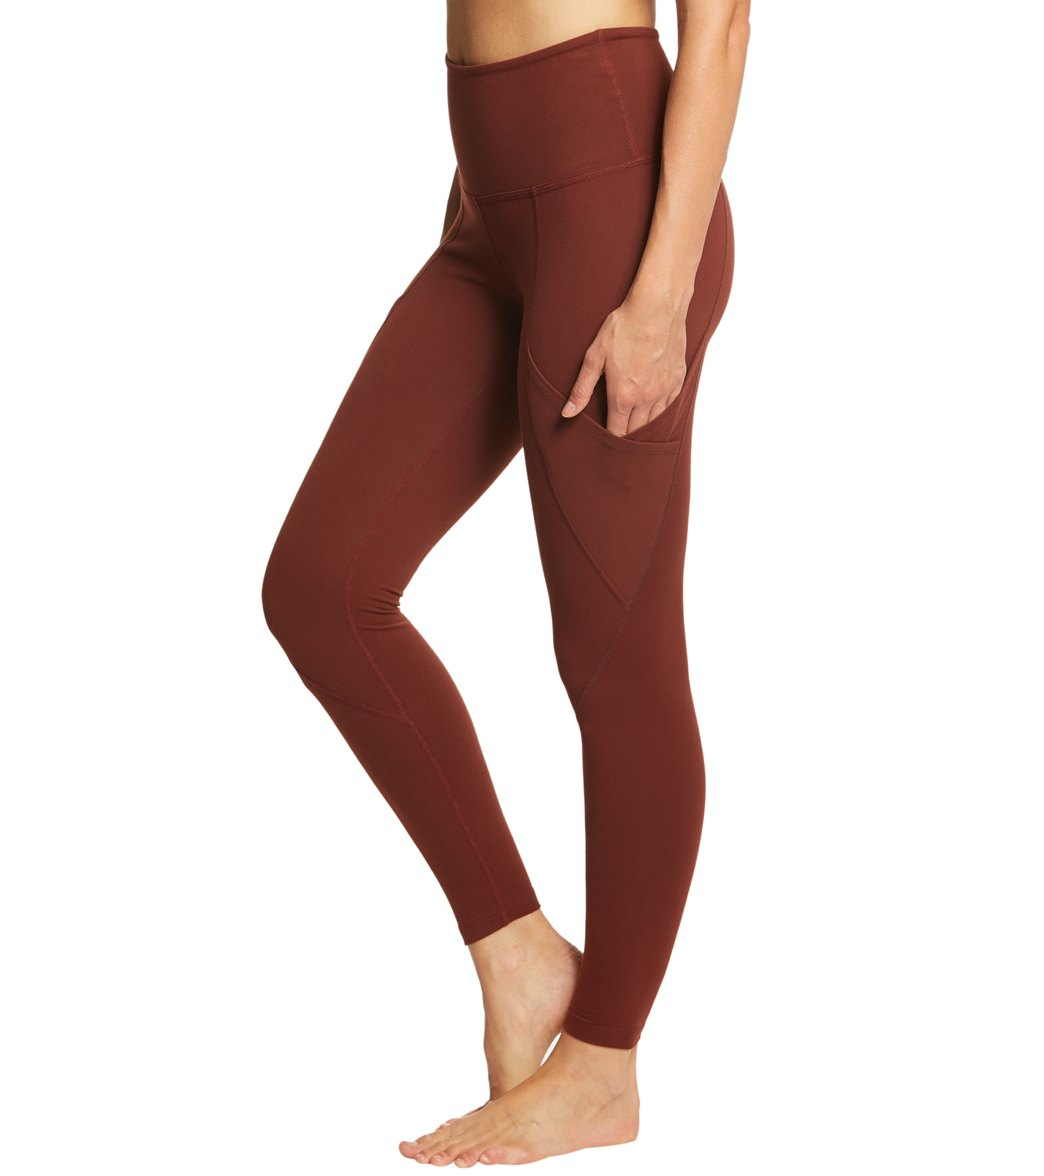 d741c4468d Beyond Yoga Palomino High Waisted 7/8 Yoga Leggings With Pockets at  YogaOutlet.com - Free Shipping